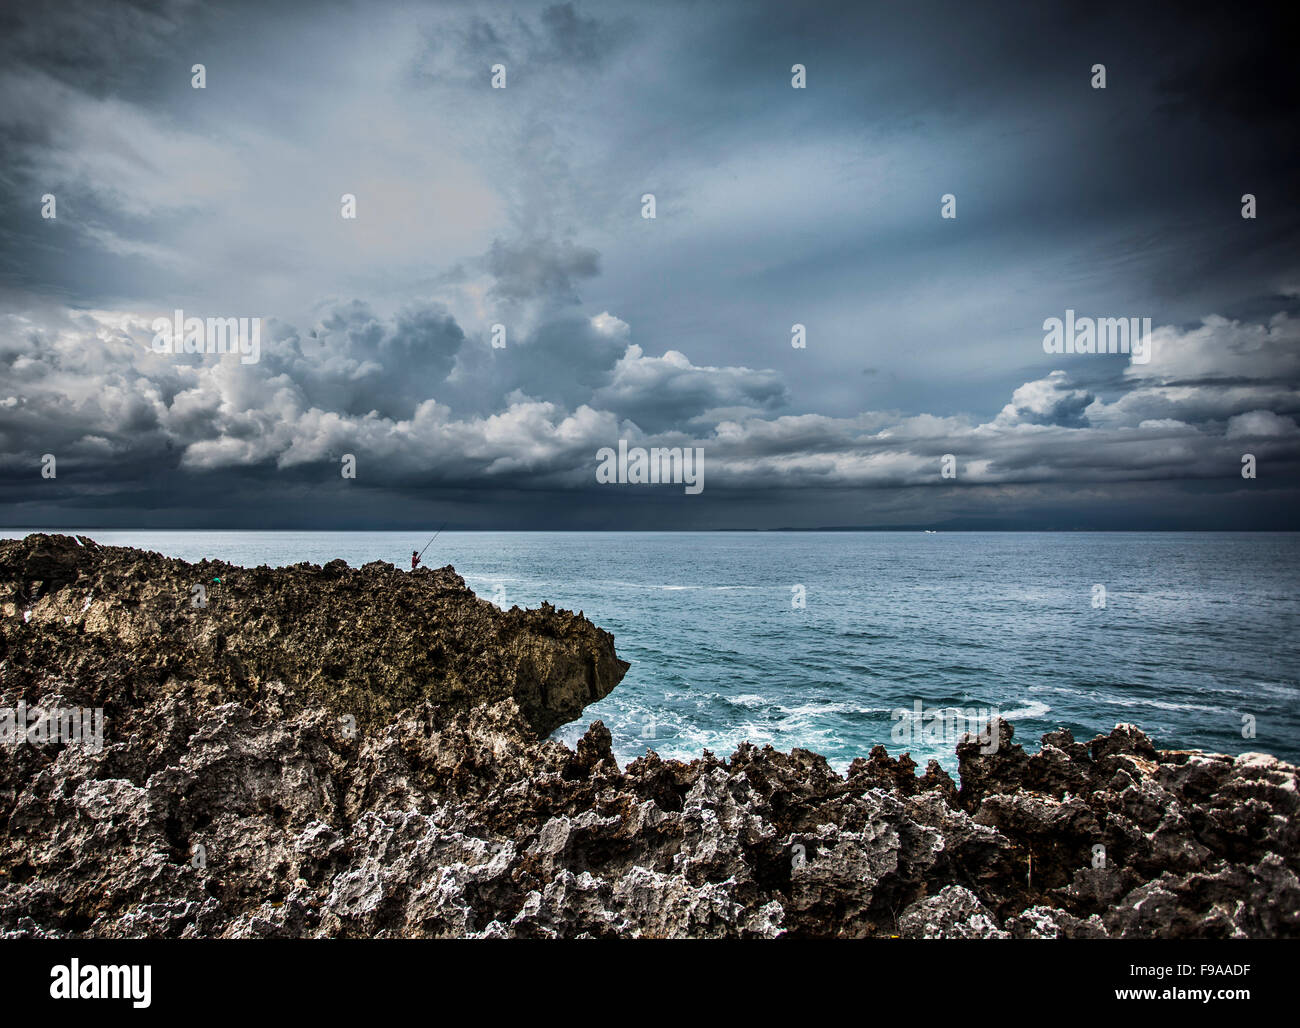 Fisherman and the Indian Ocean - Stock Image